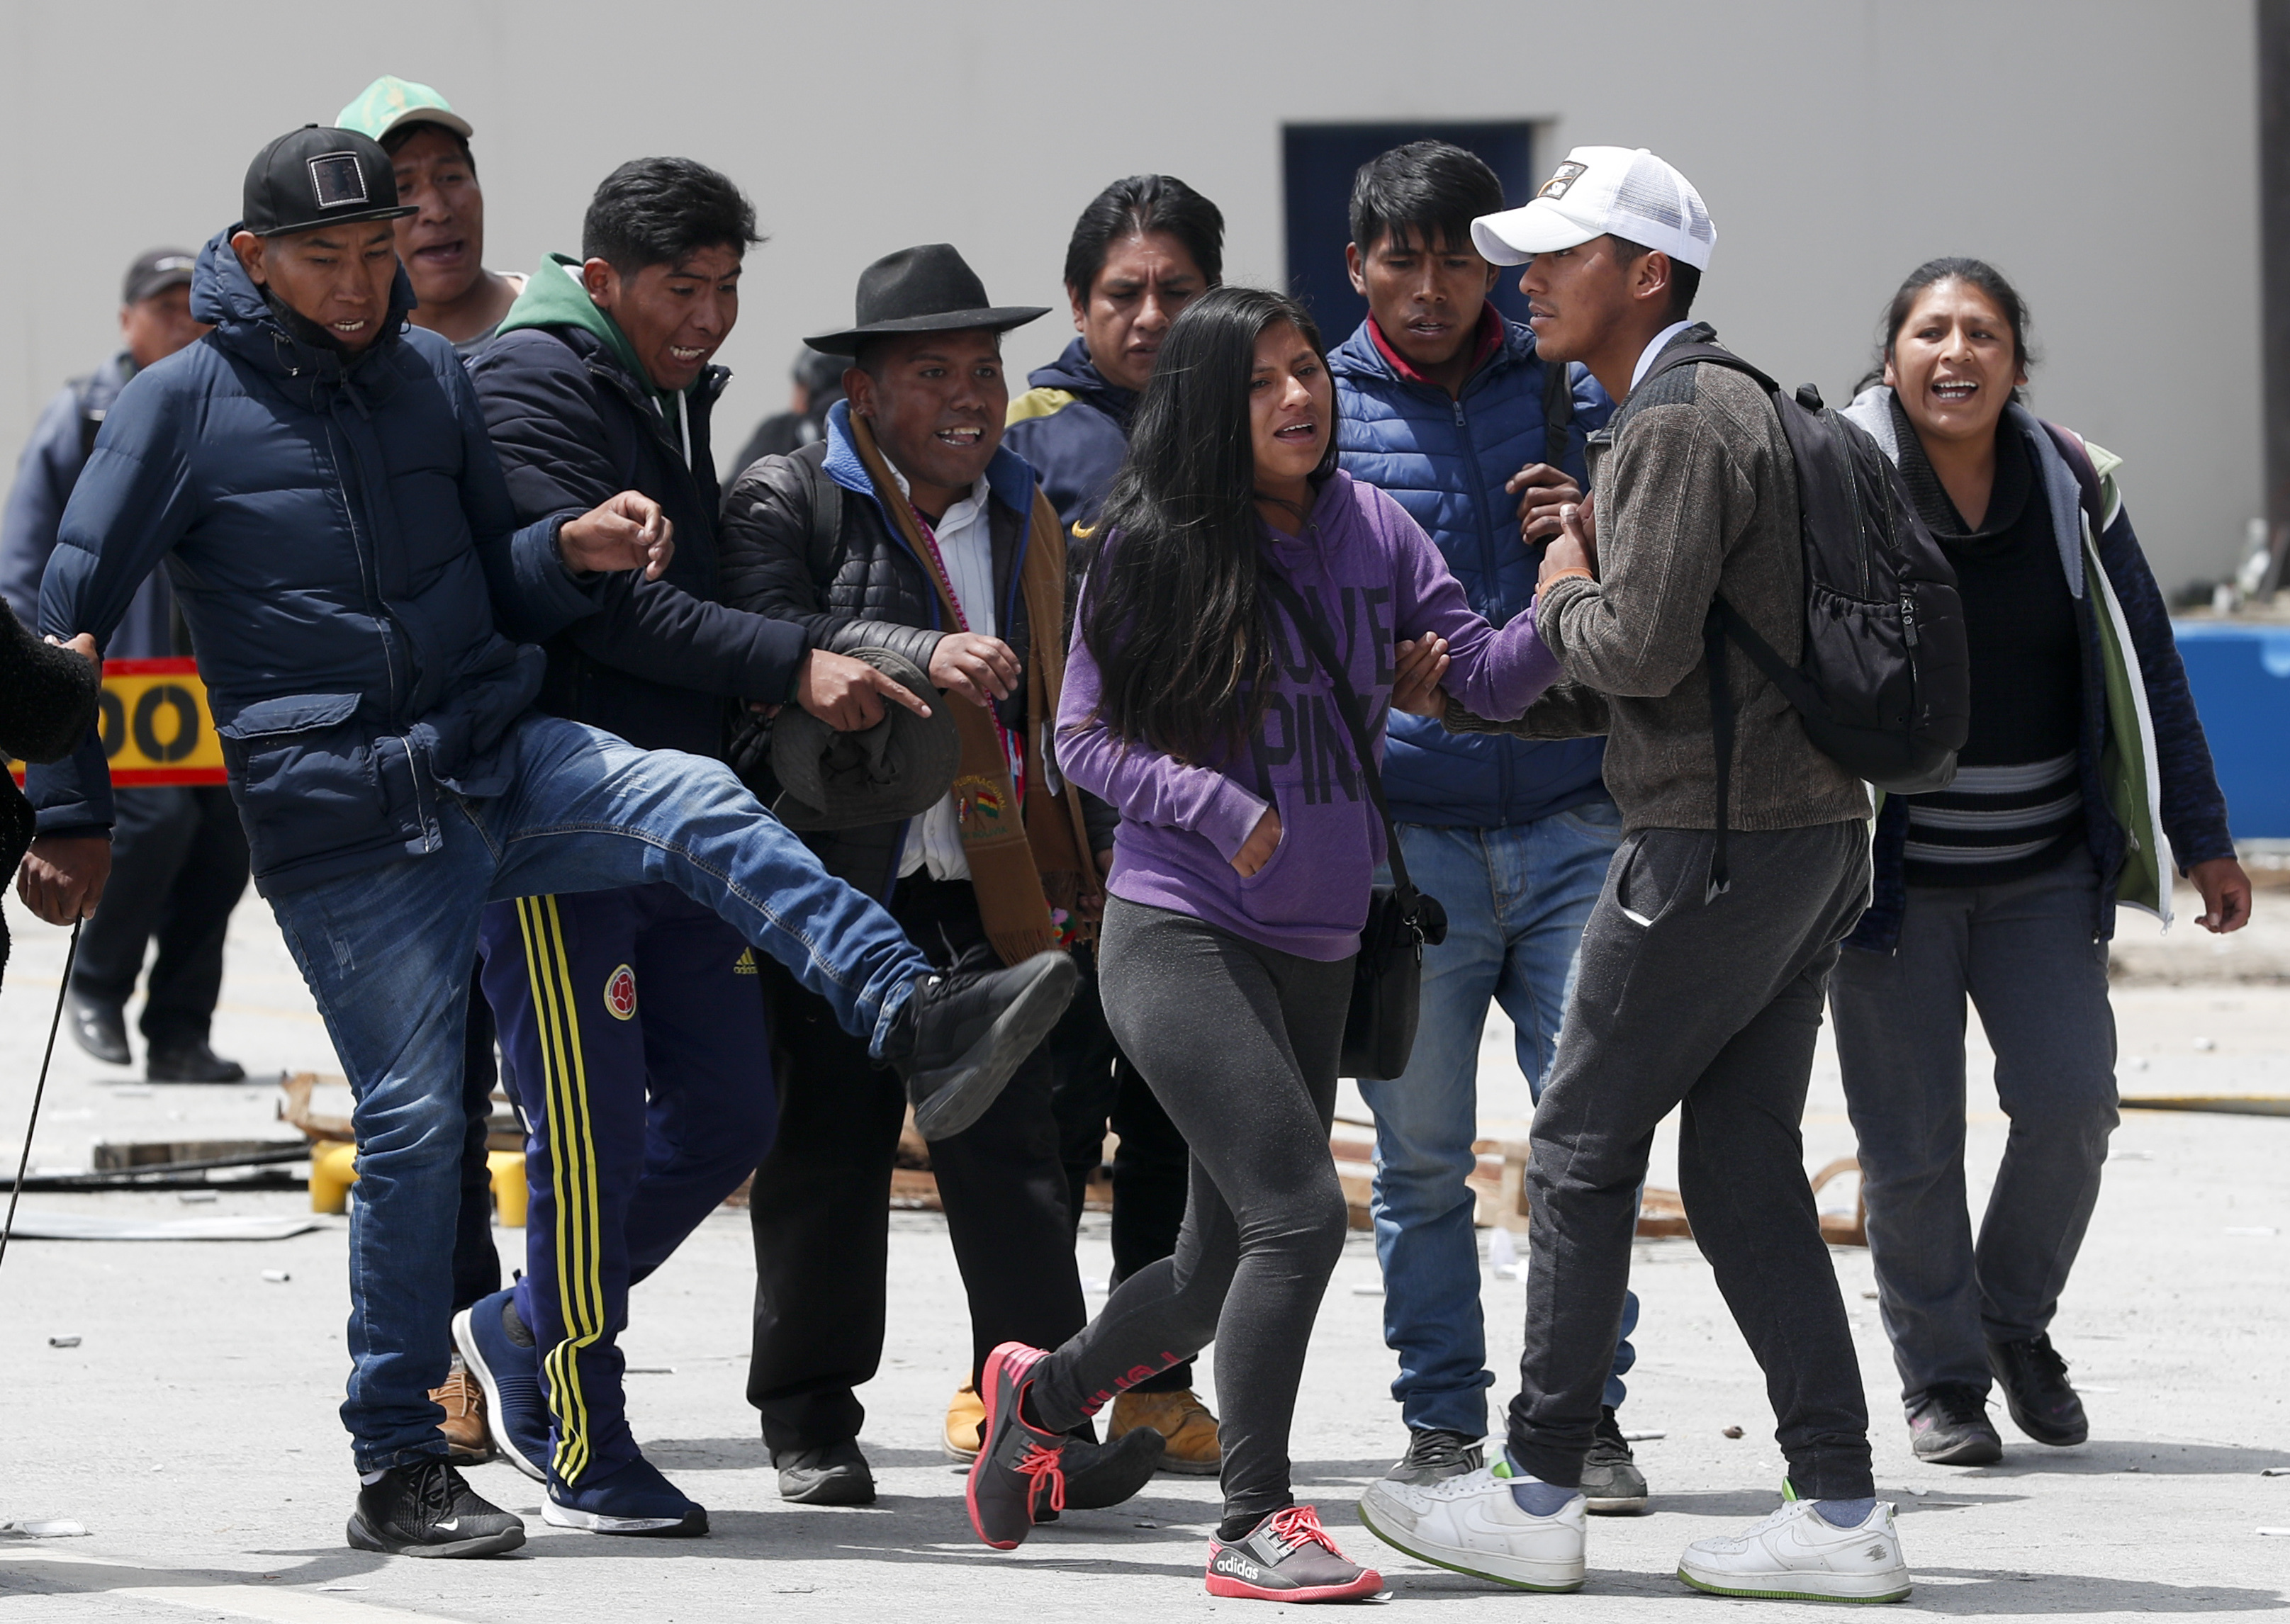 One person that is part of a group of followers of President Evo Morales kicks towards a couple in La Paz, Bolivia, Sunday, November 10, 2019